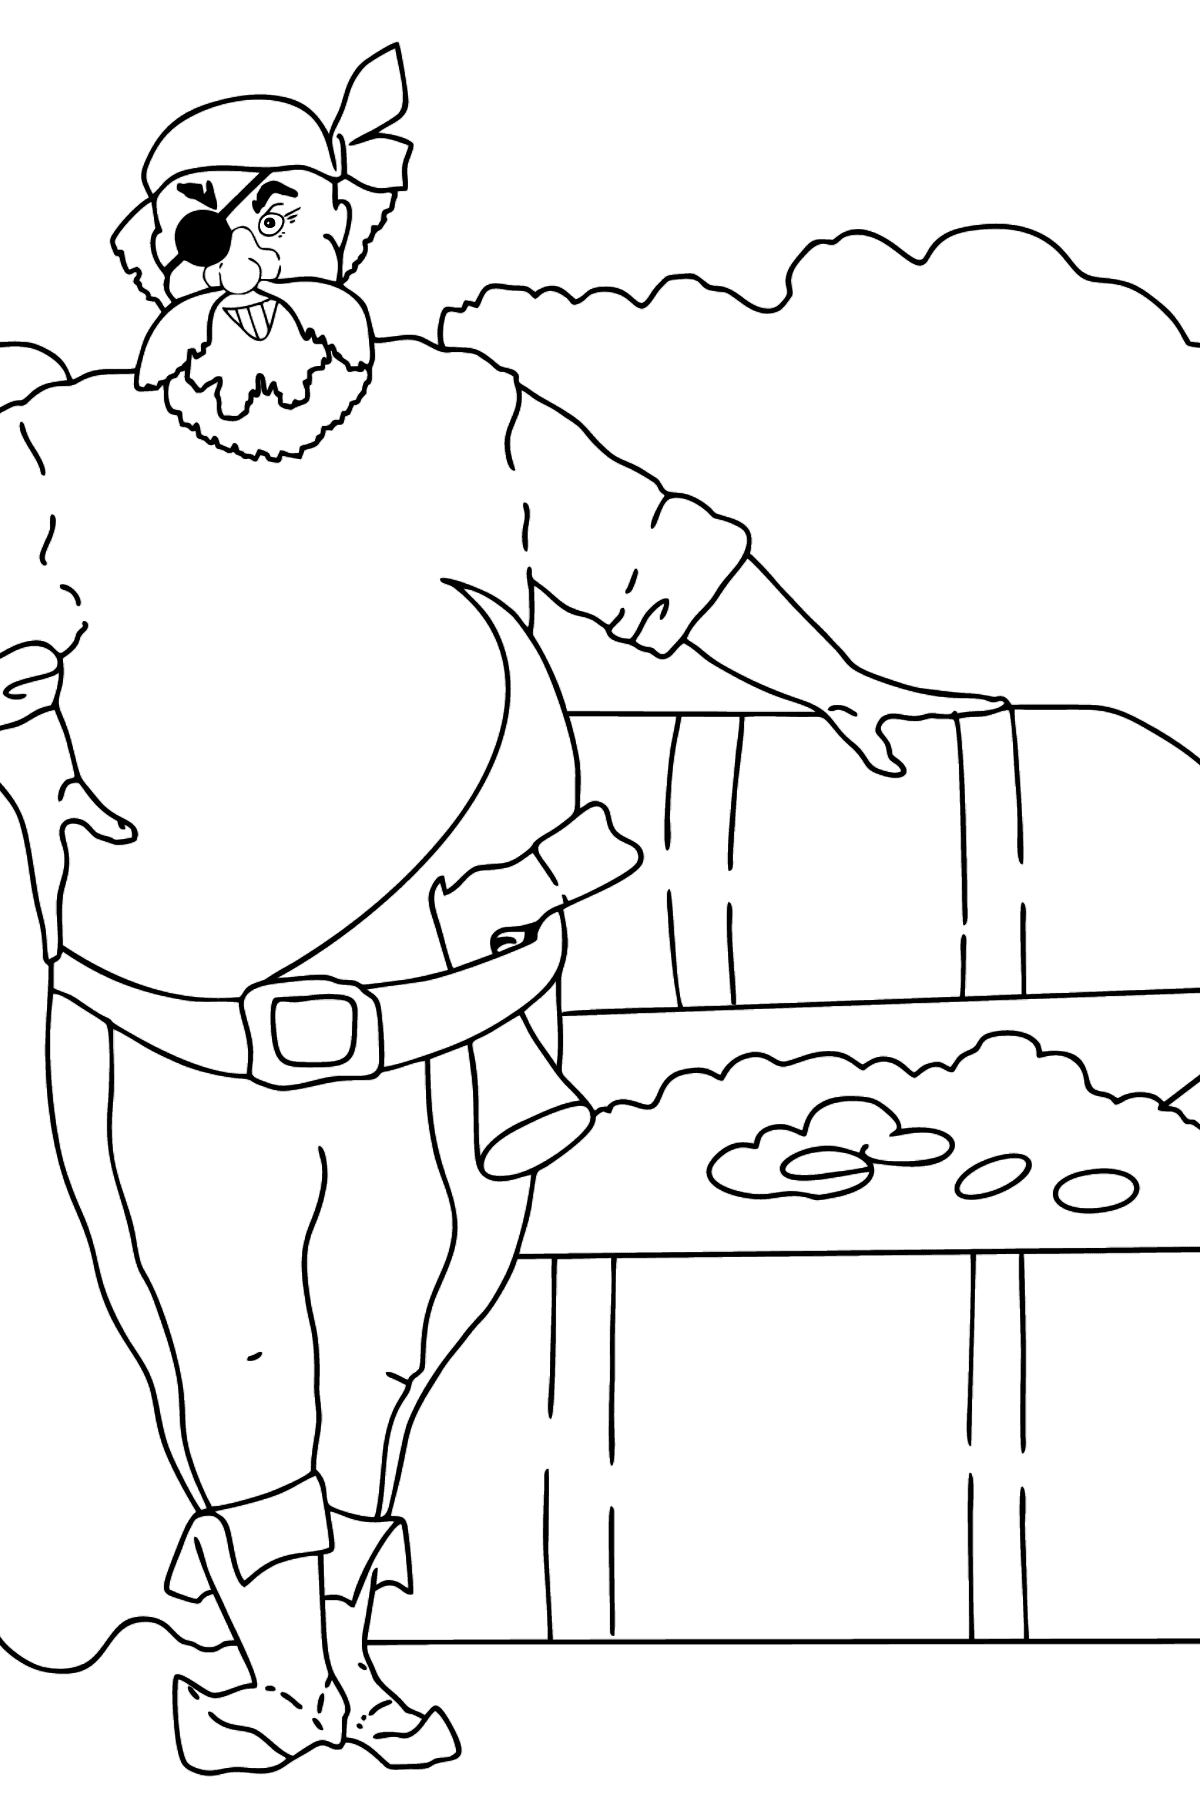 Coloring Page - A Pirate has Found a Treasure - Coloring Pages for Kids